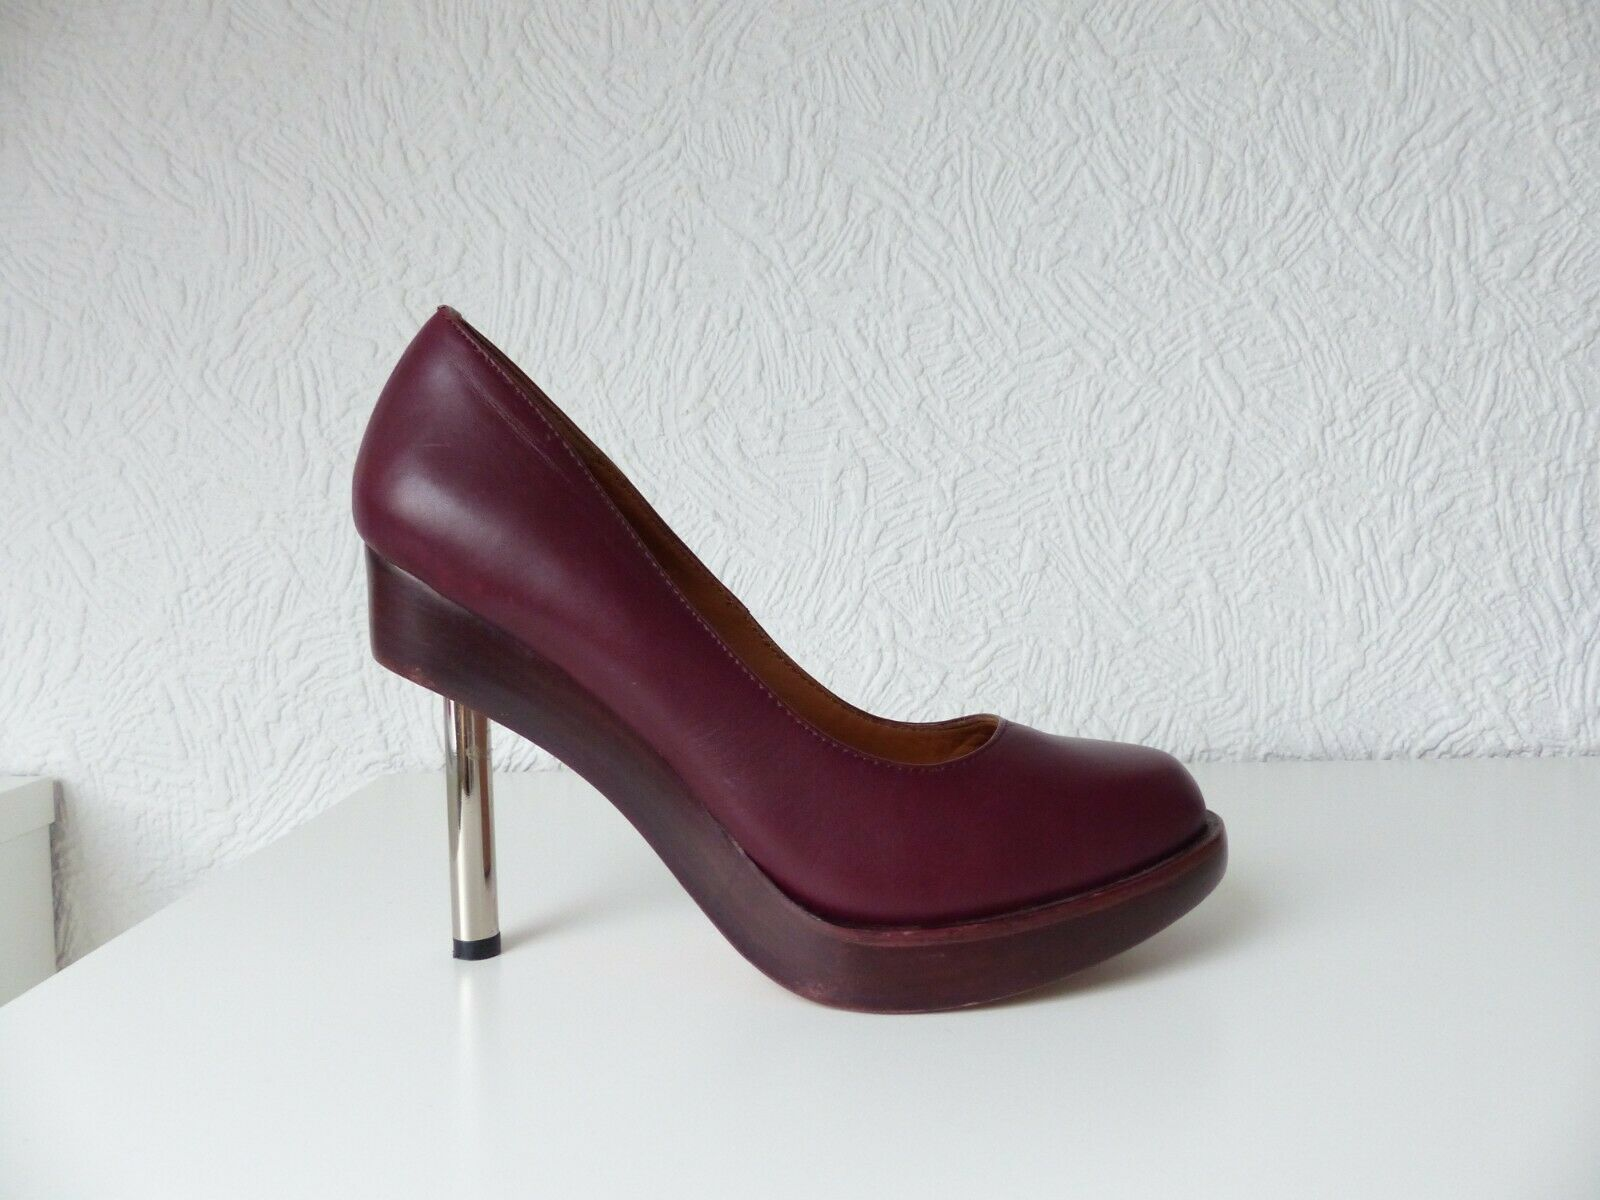 & Other Stories Pumps dunkelrot bordeaux silber Gr. 38 Neupreis